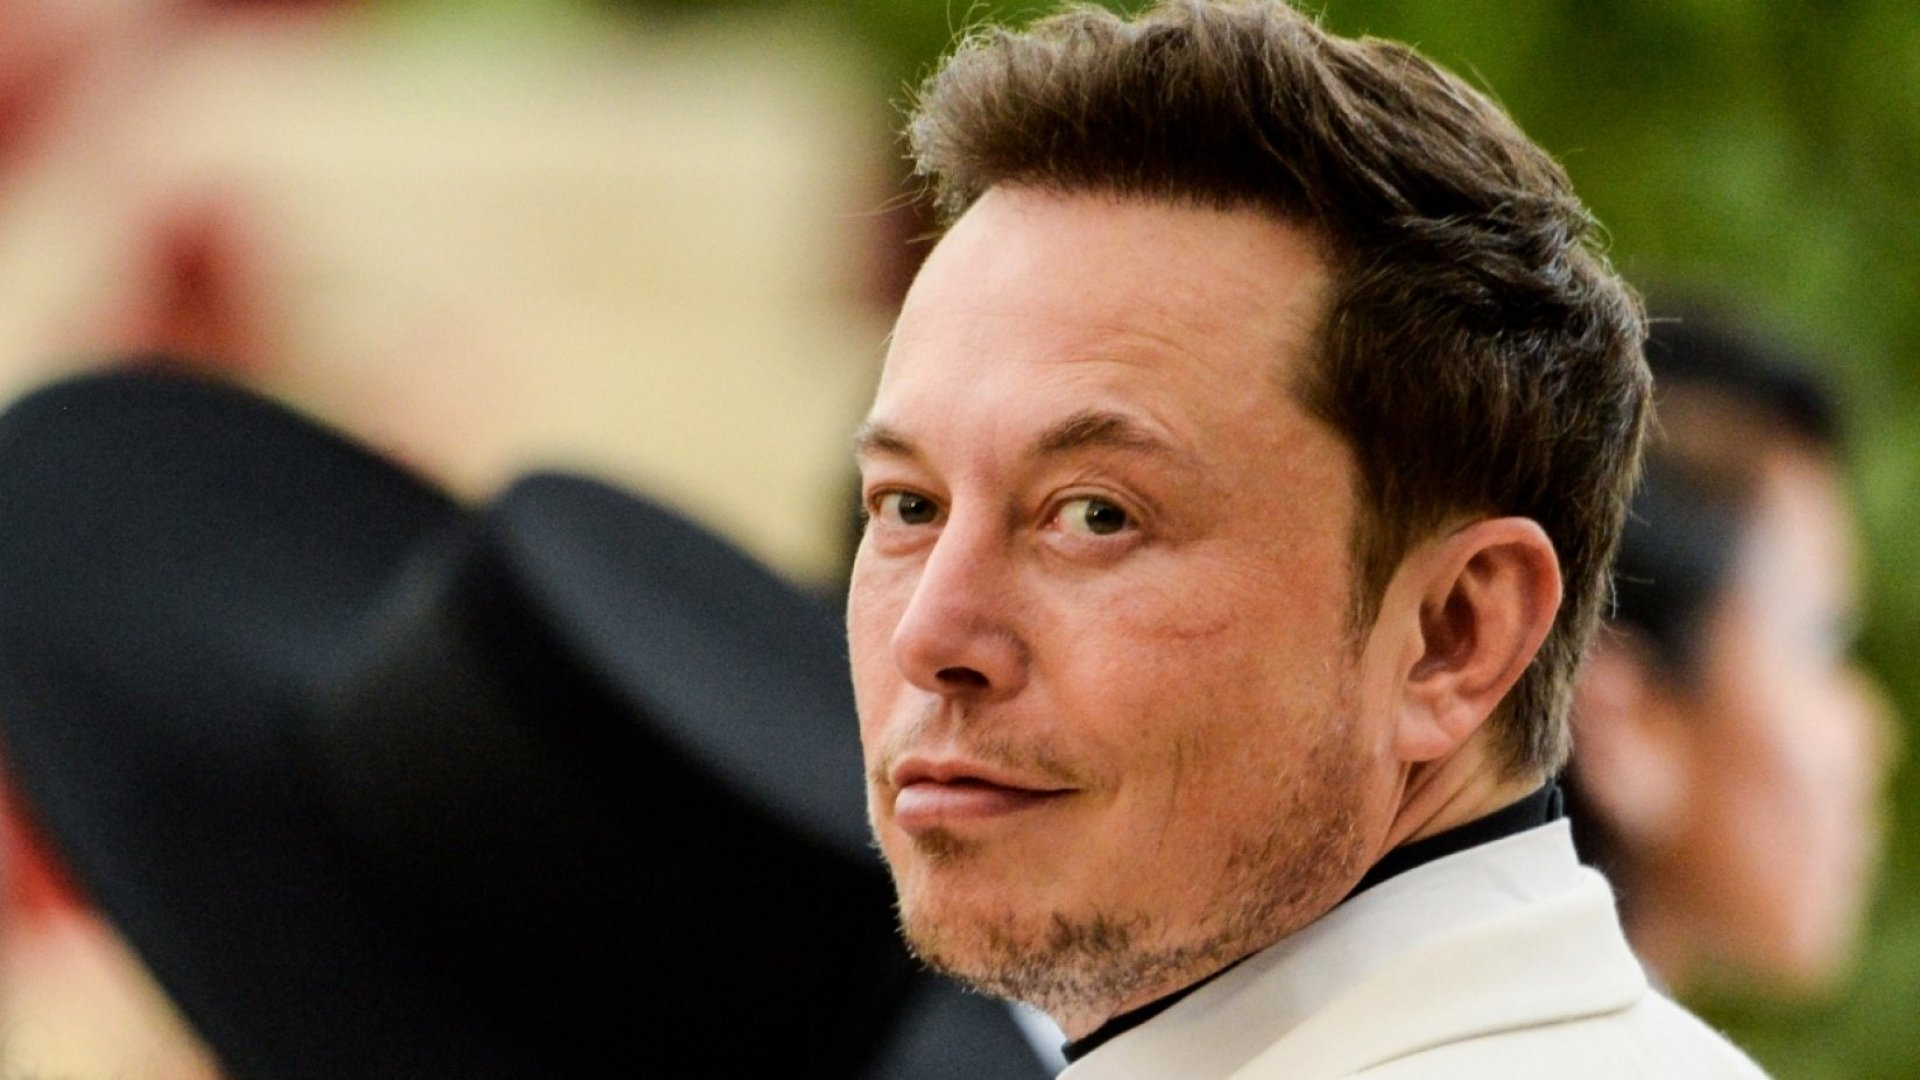 Elon Musk Proves That Success Doesn't Require Working Long Hours